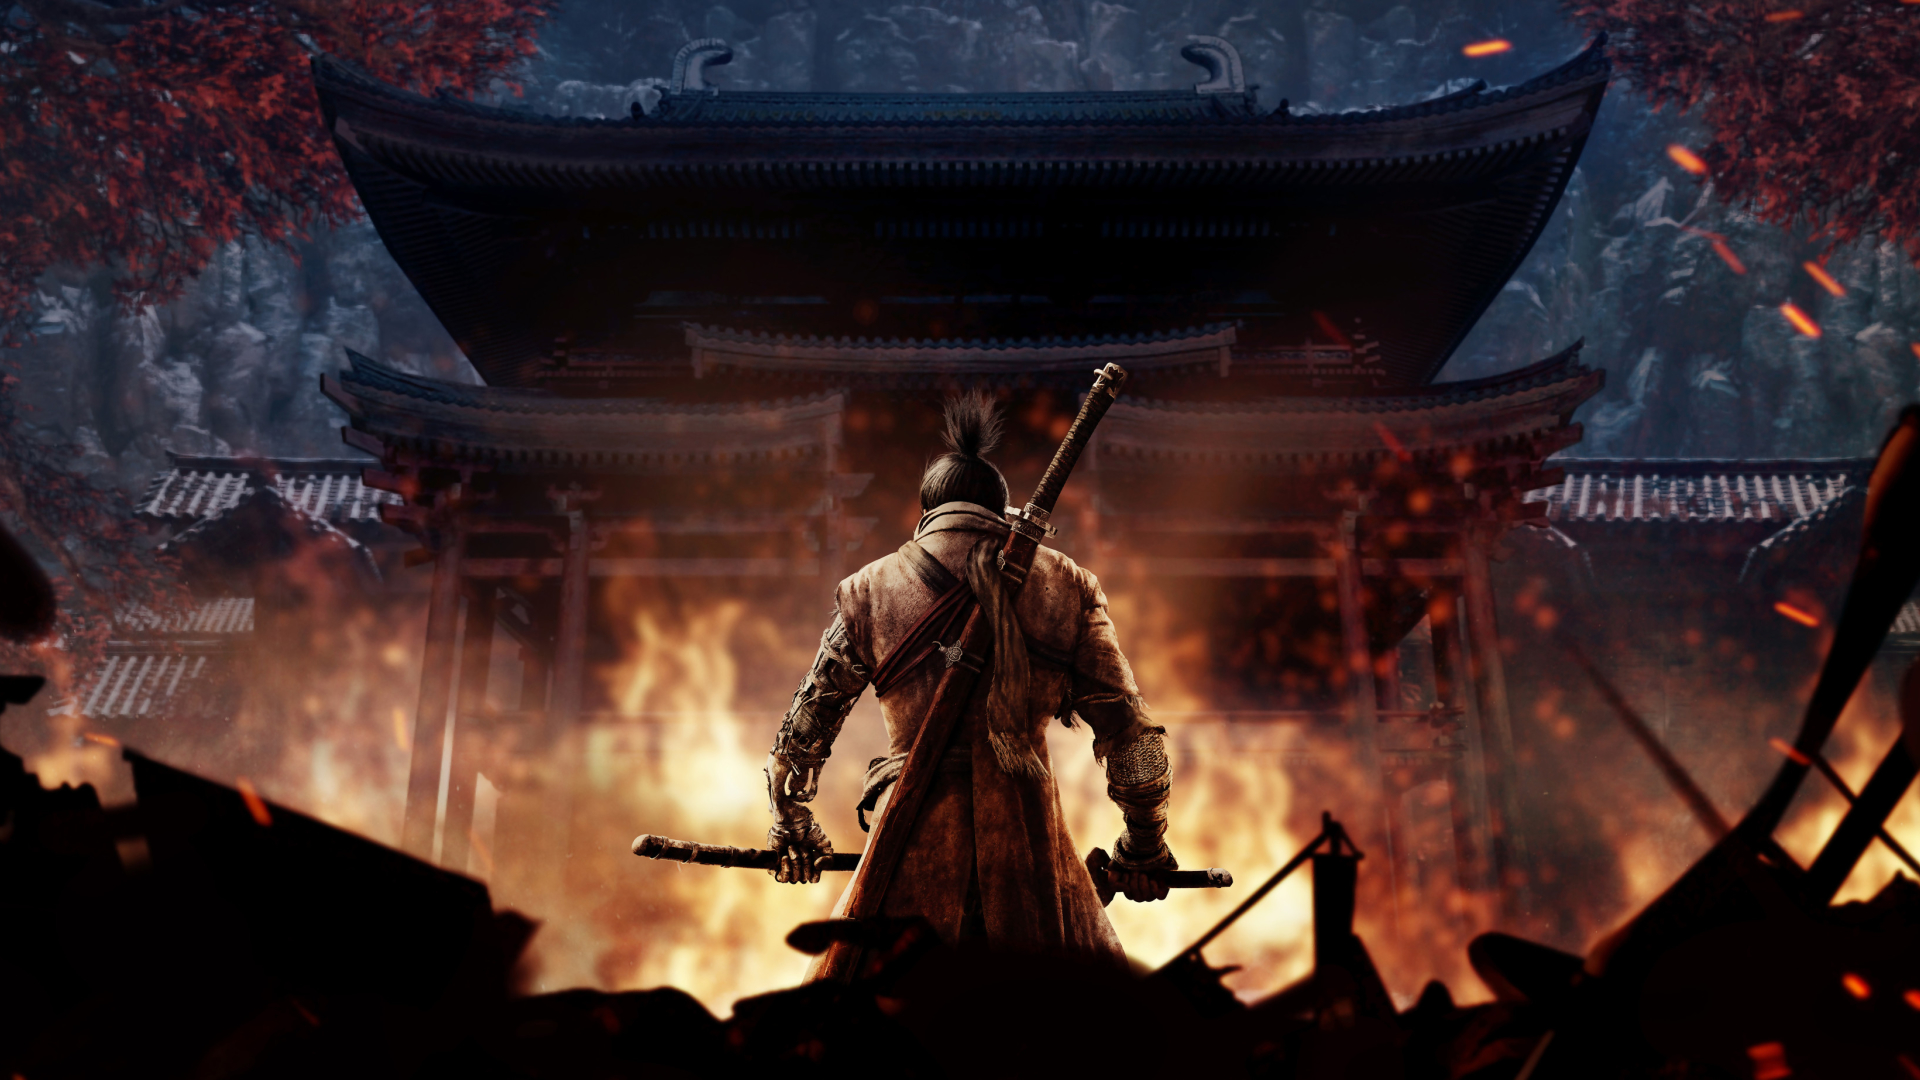 1920x1080 Sekiro Shadows Die Twice 4k 1080p Laptop Full Hd Wallpaper Hd Games 4k Wallpapers Images Photos And Background